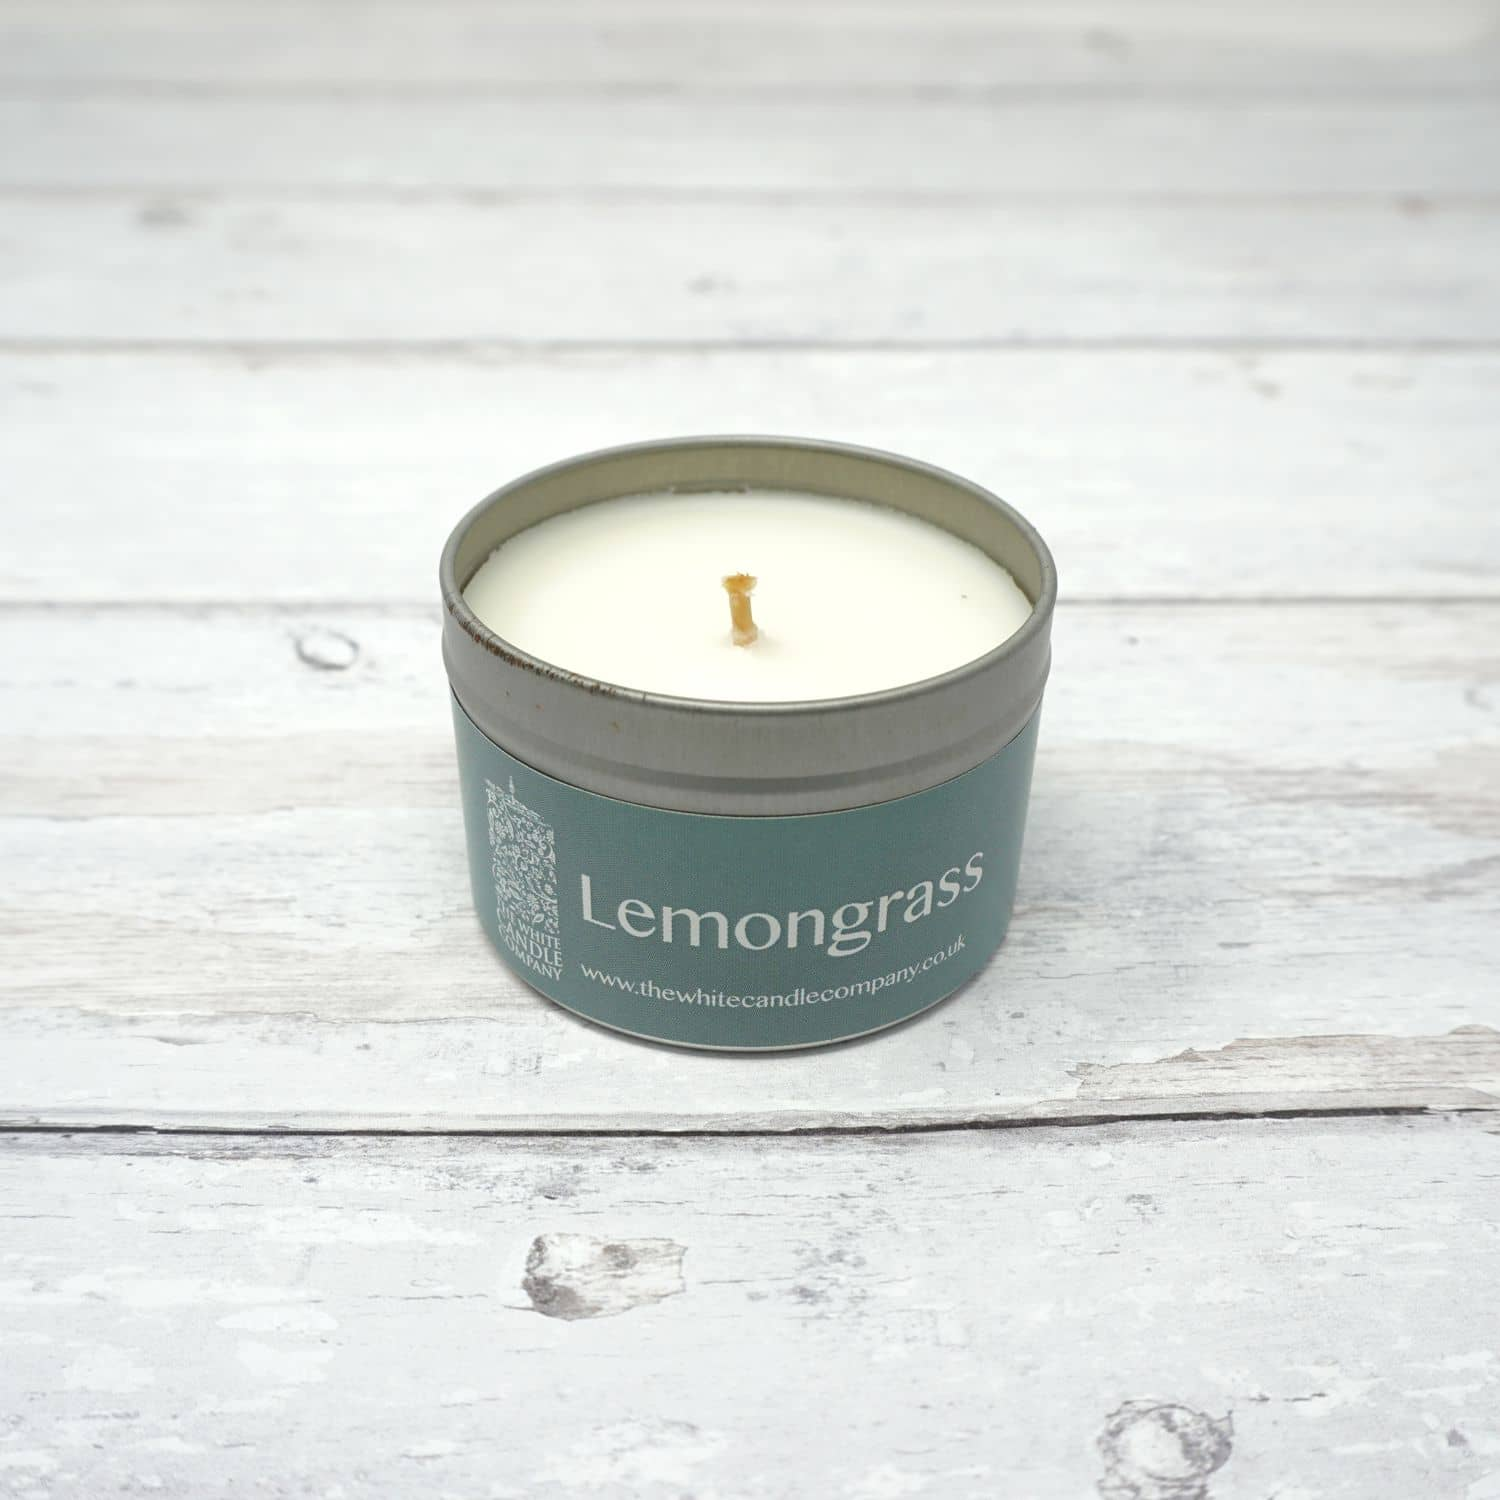 White Candle Company 100g Tin - Lemongrass | Yarn Worx